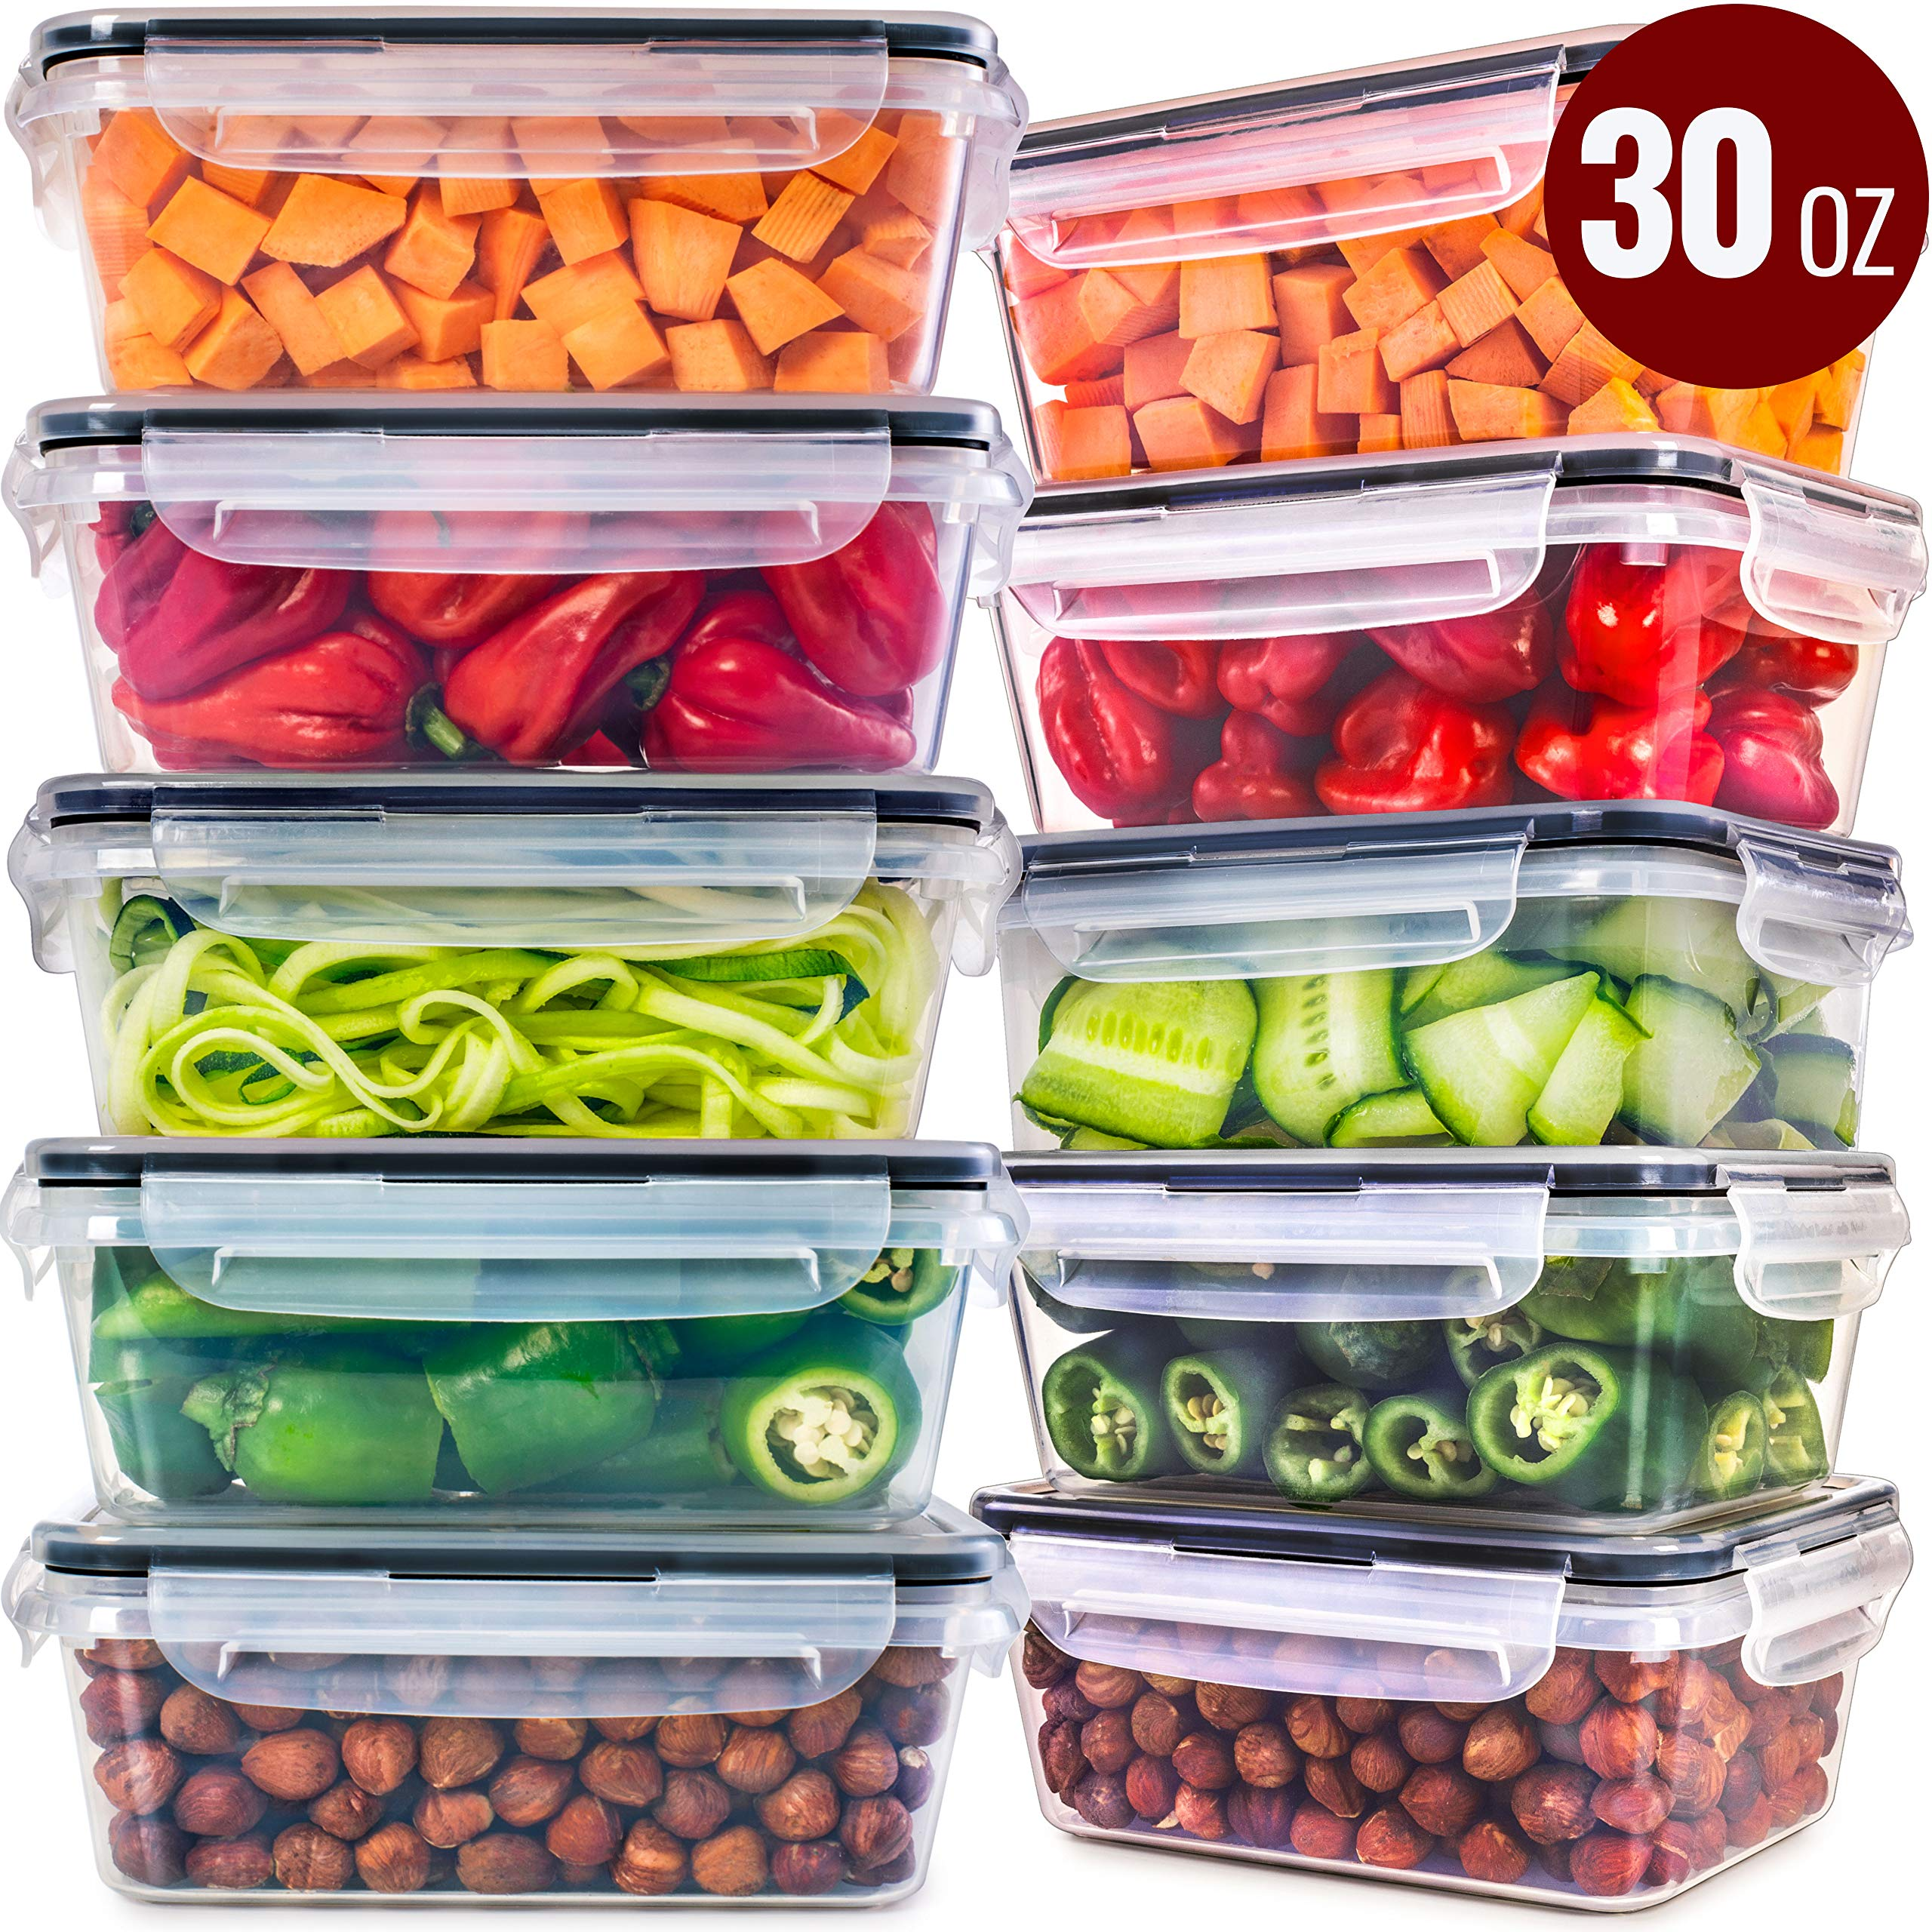 Food Storage Containers with Lids [10 Pack, 30 Ounce] - Food Containers with Lids Plastic Containers with Lids - Leak Proof Lunch Containers Plastic Storage Containers with Lids Meal Prep Containers by Fullstar